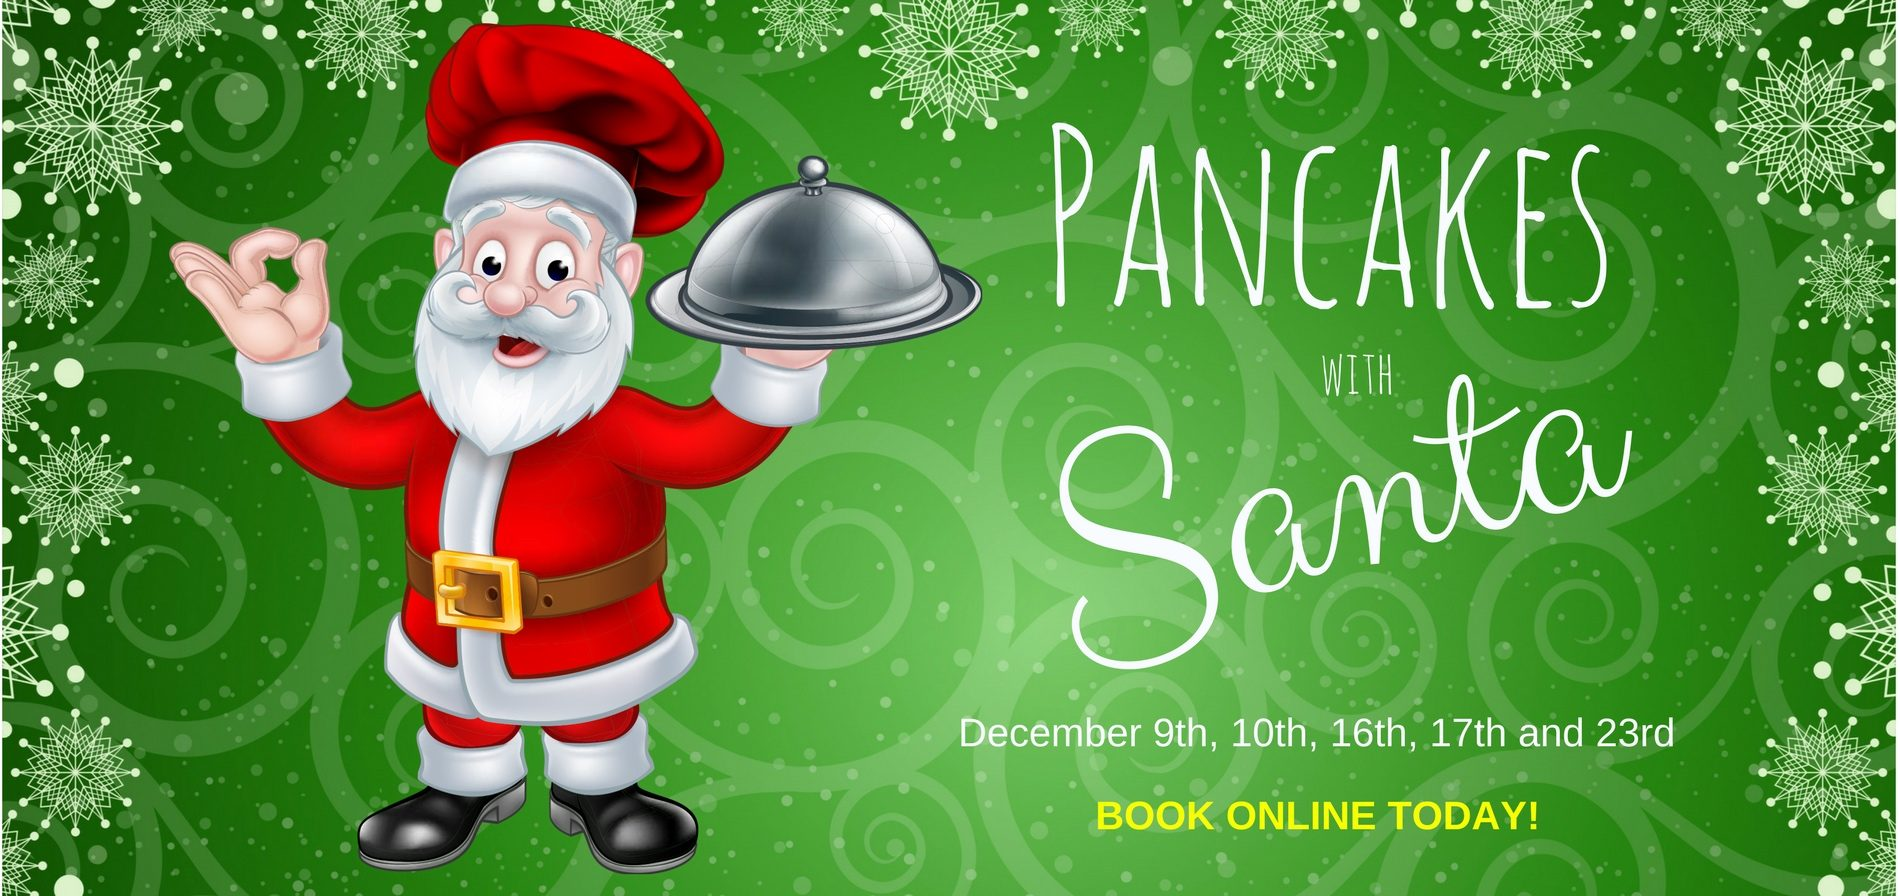 Pancakes with Santa slider